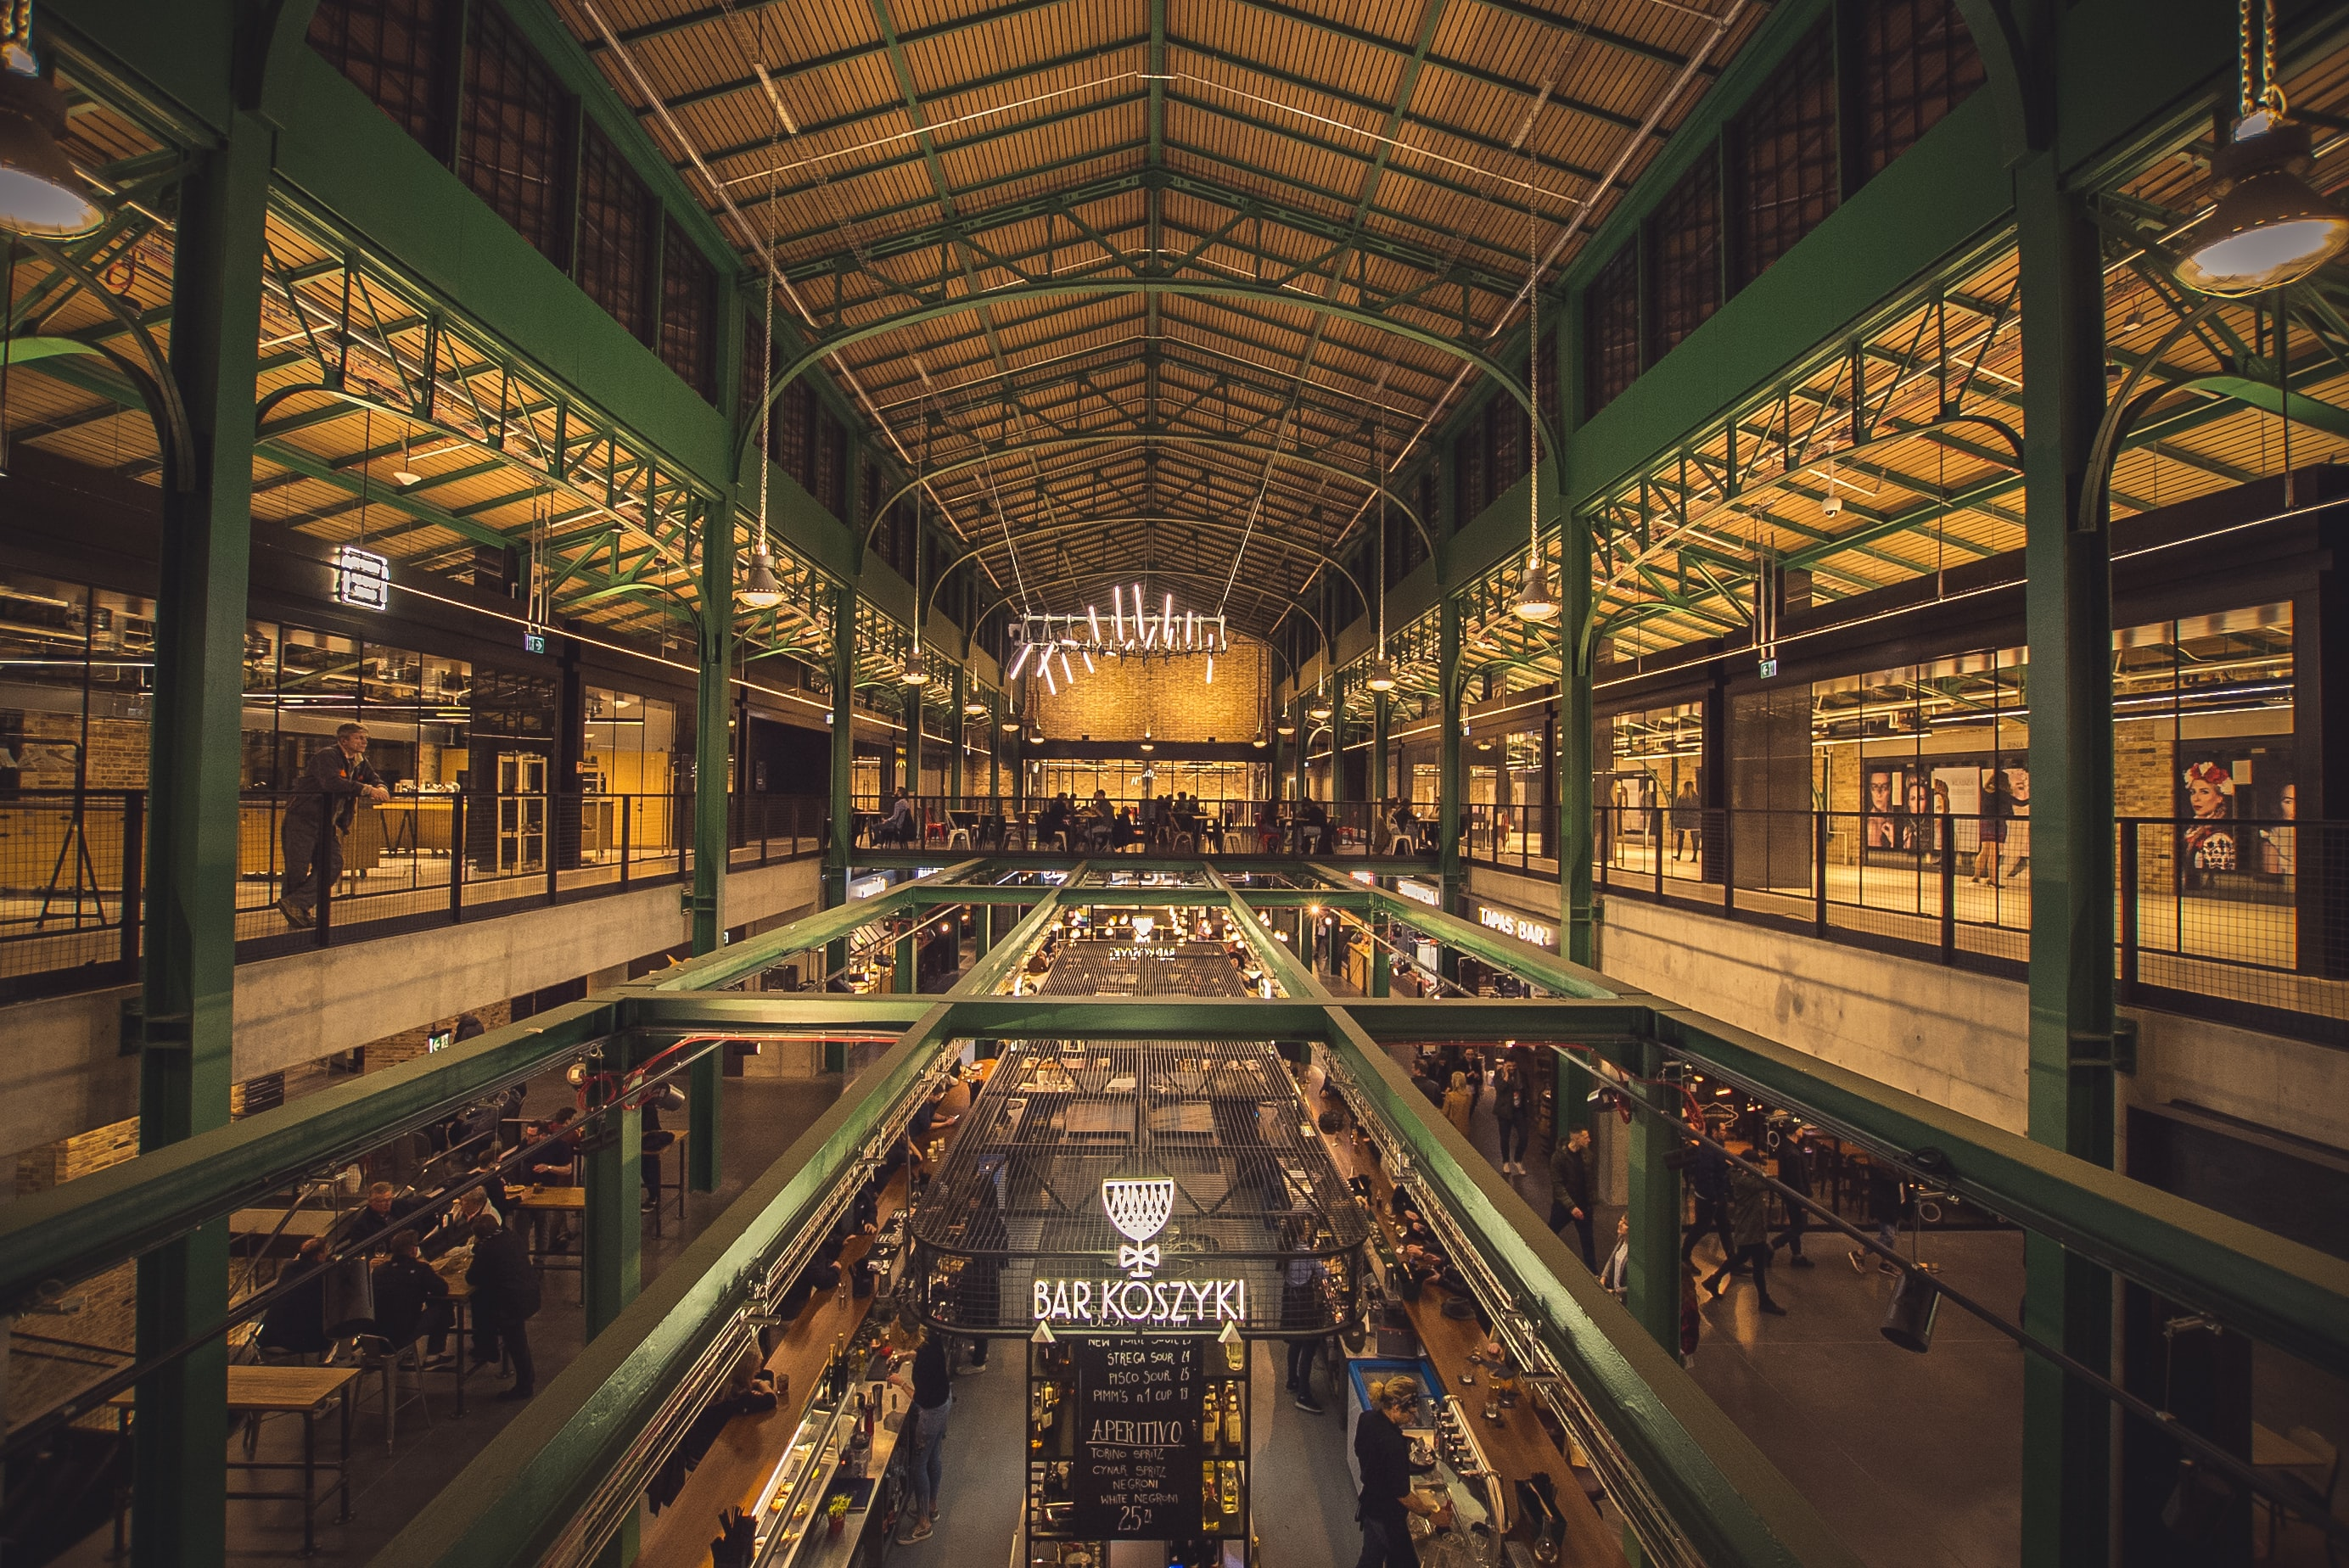 The interior of a market hall in Warsaw